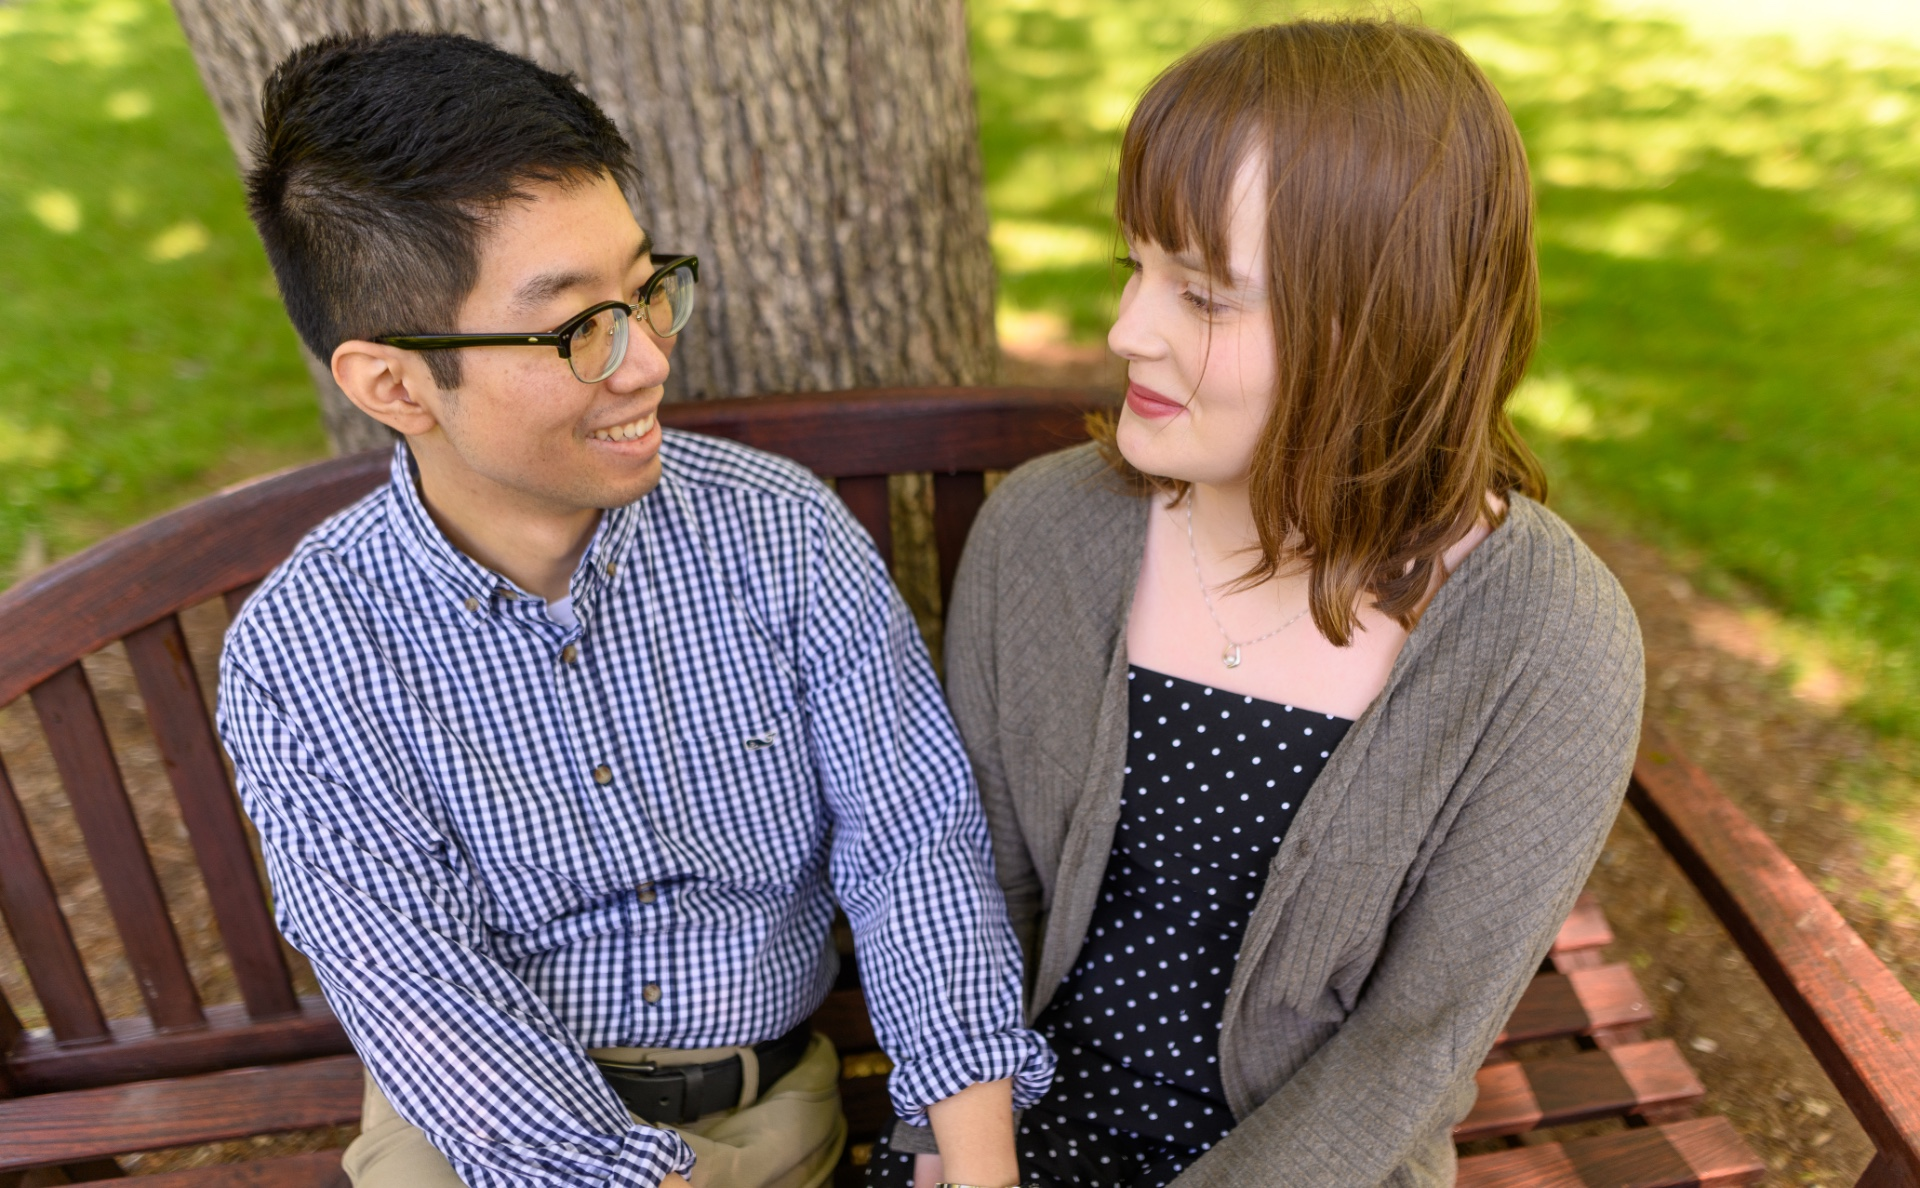 Ronnie and his girlfriend sit on a bench outside and smile at each other as they hold hands. She is a young white woman with light-brown hair in a mid-length cut, and she is wearing a grey sweater over a blue and white polka dot dress.